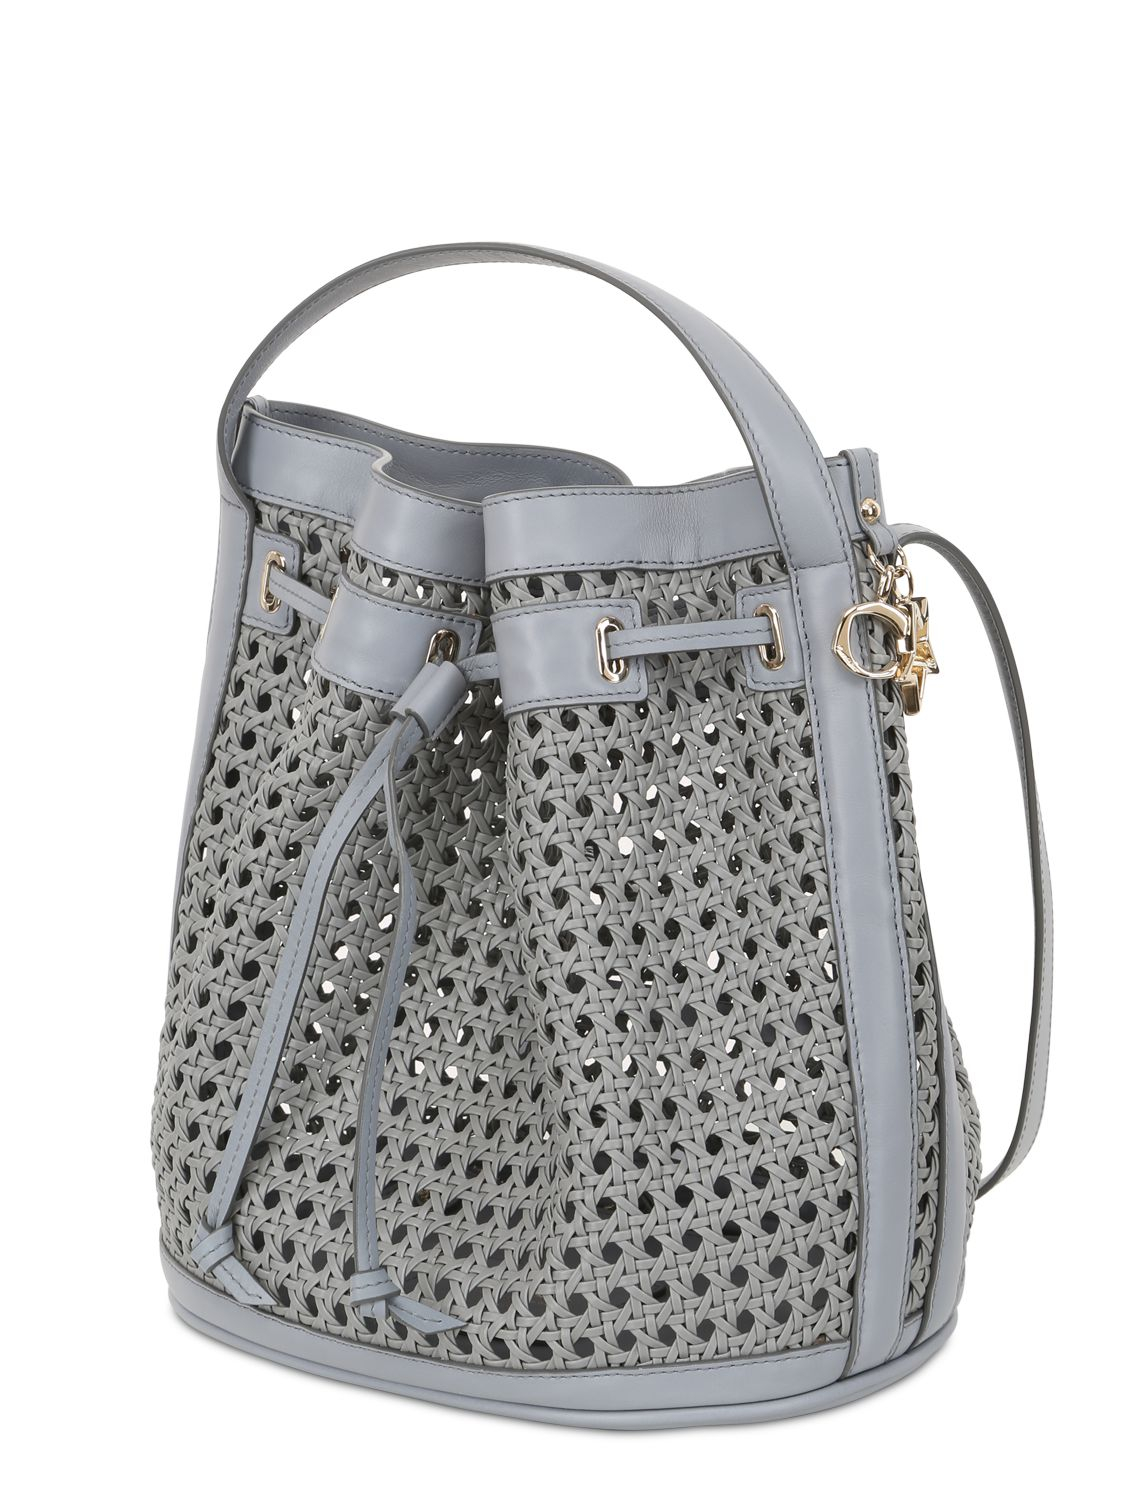 Lyst Corto Moltedo Bentota Woven Faux Leather Bucket Bag